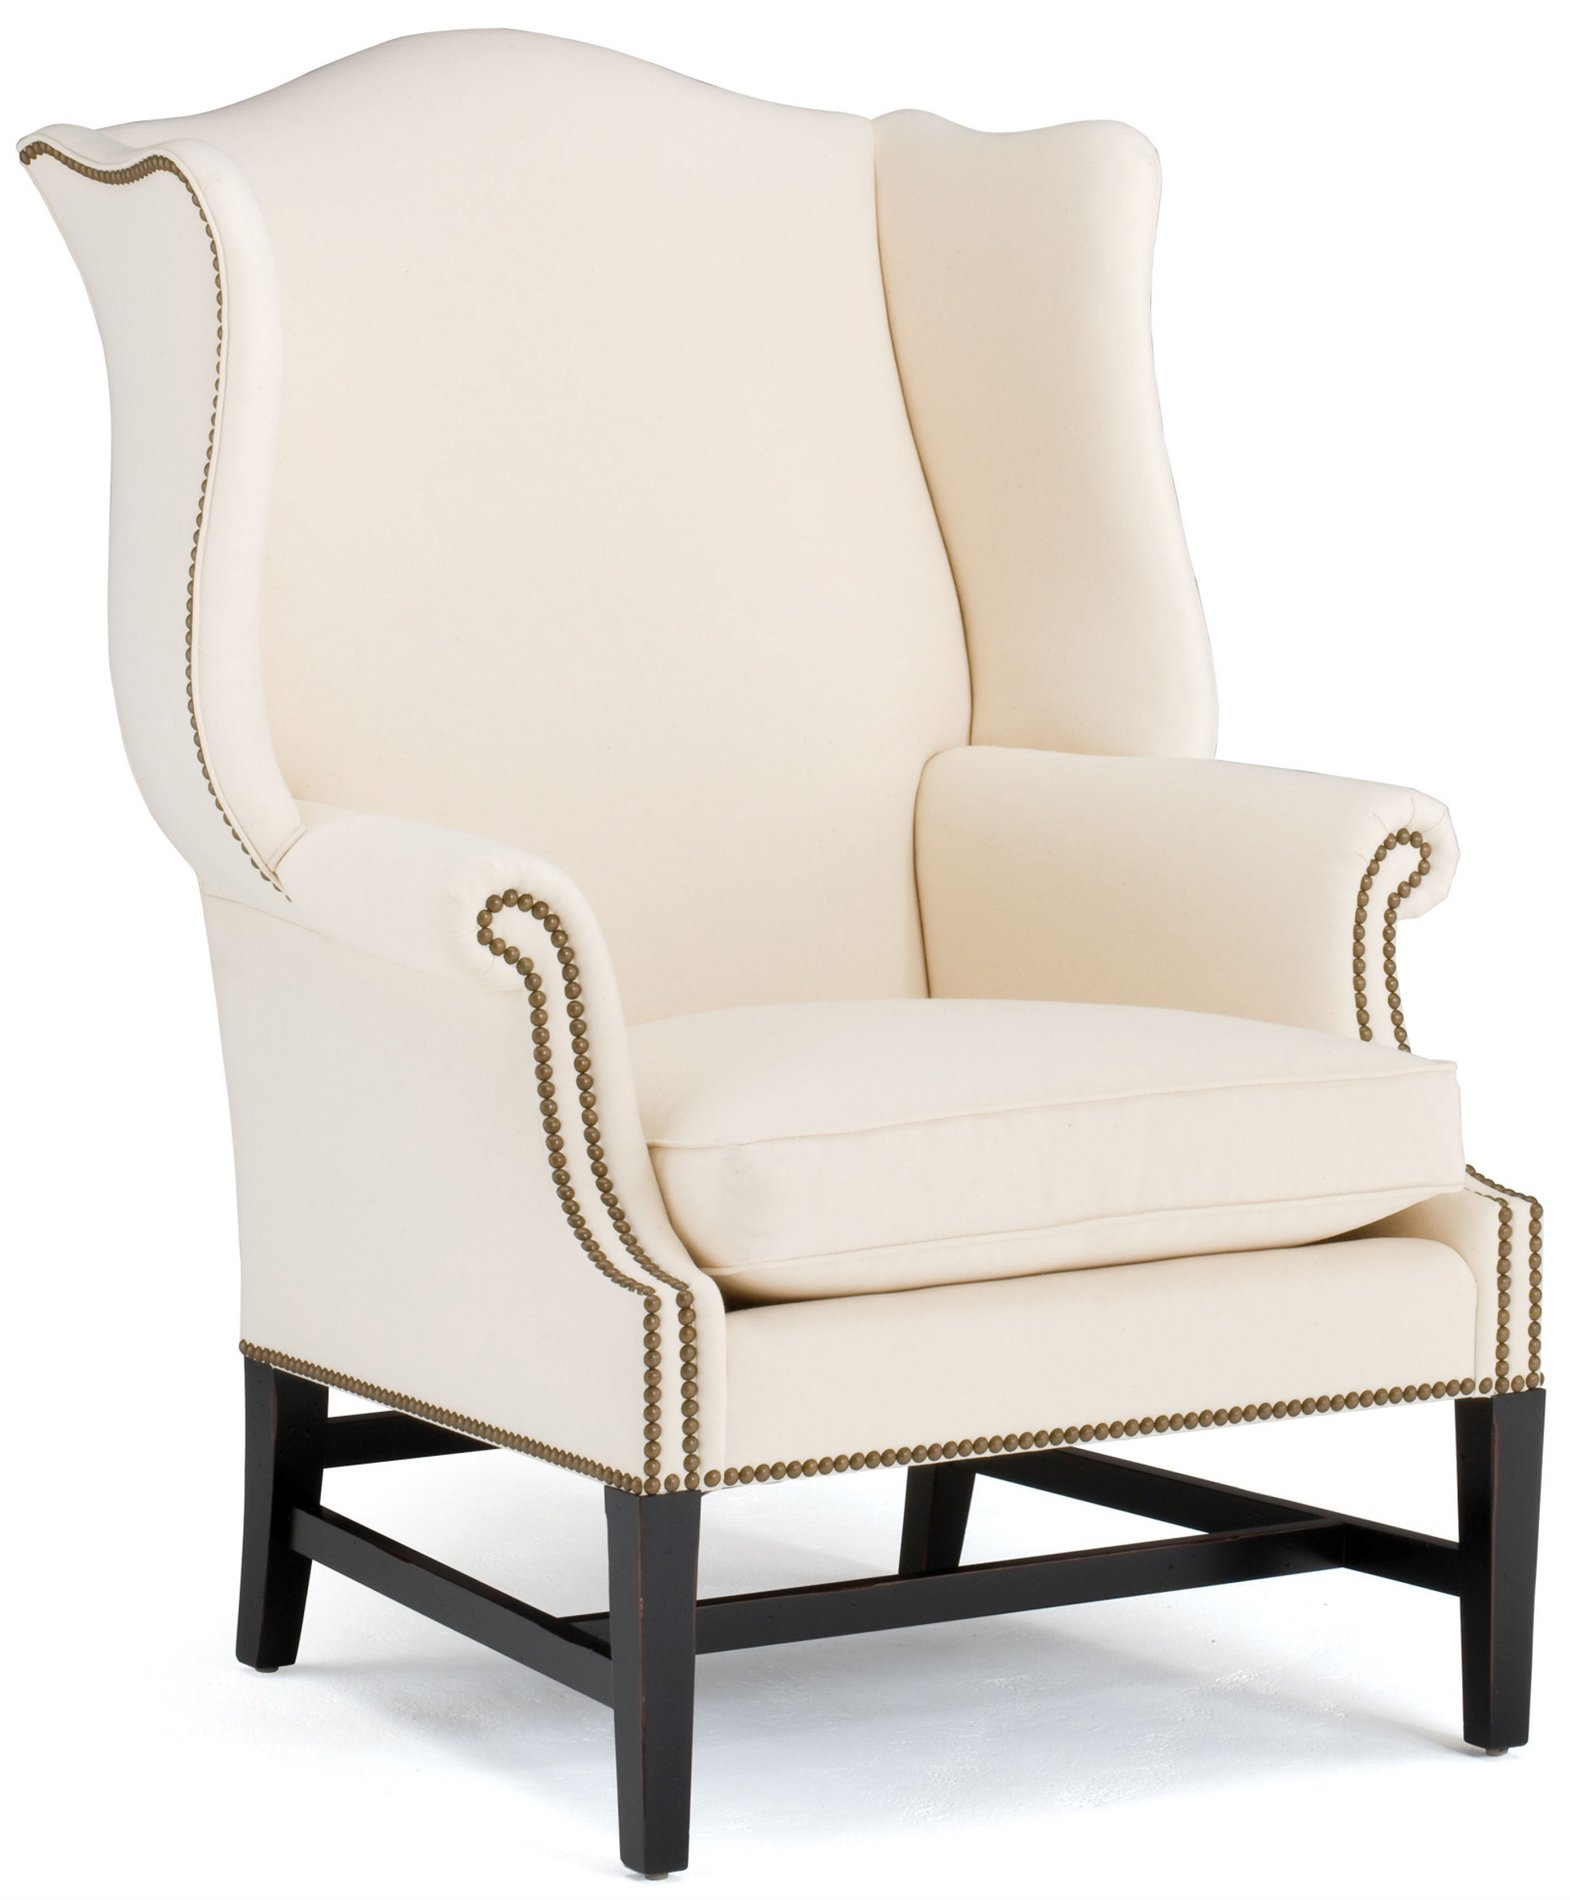 transitional accent chairs chair rental chicago corinth xcnc 6507